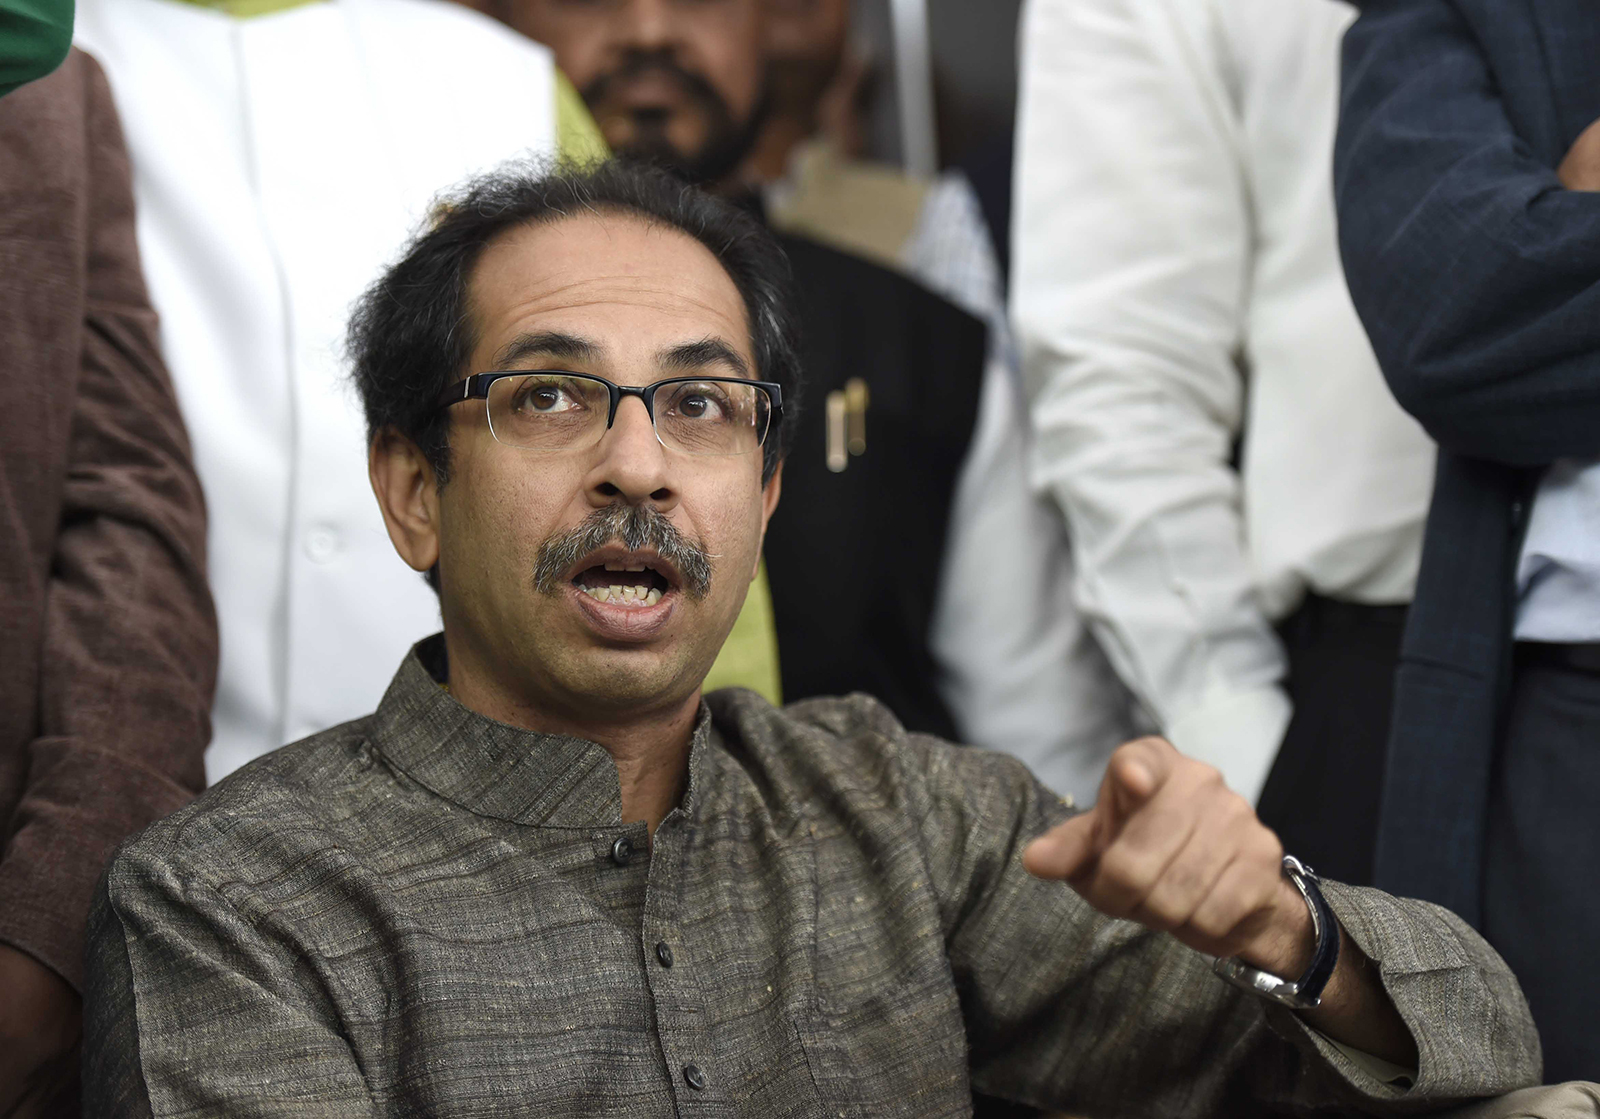 The Chief Minister of India's Maharashtra state, Uddhav Thackeray, speaks during a news conference in New Delhi, India, on December 8, 2016.